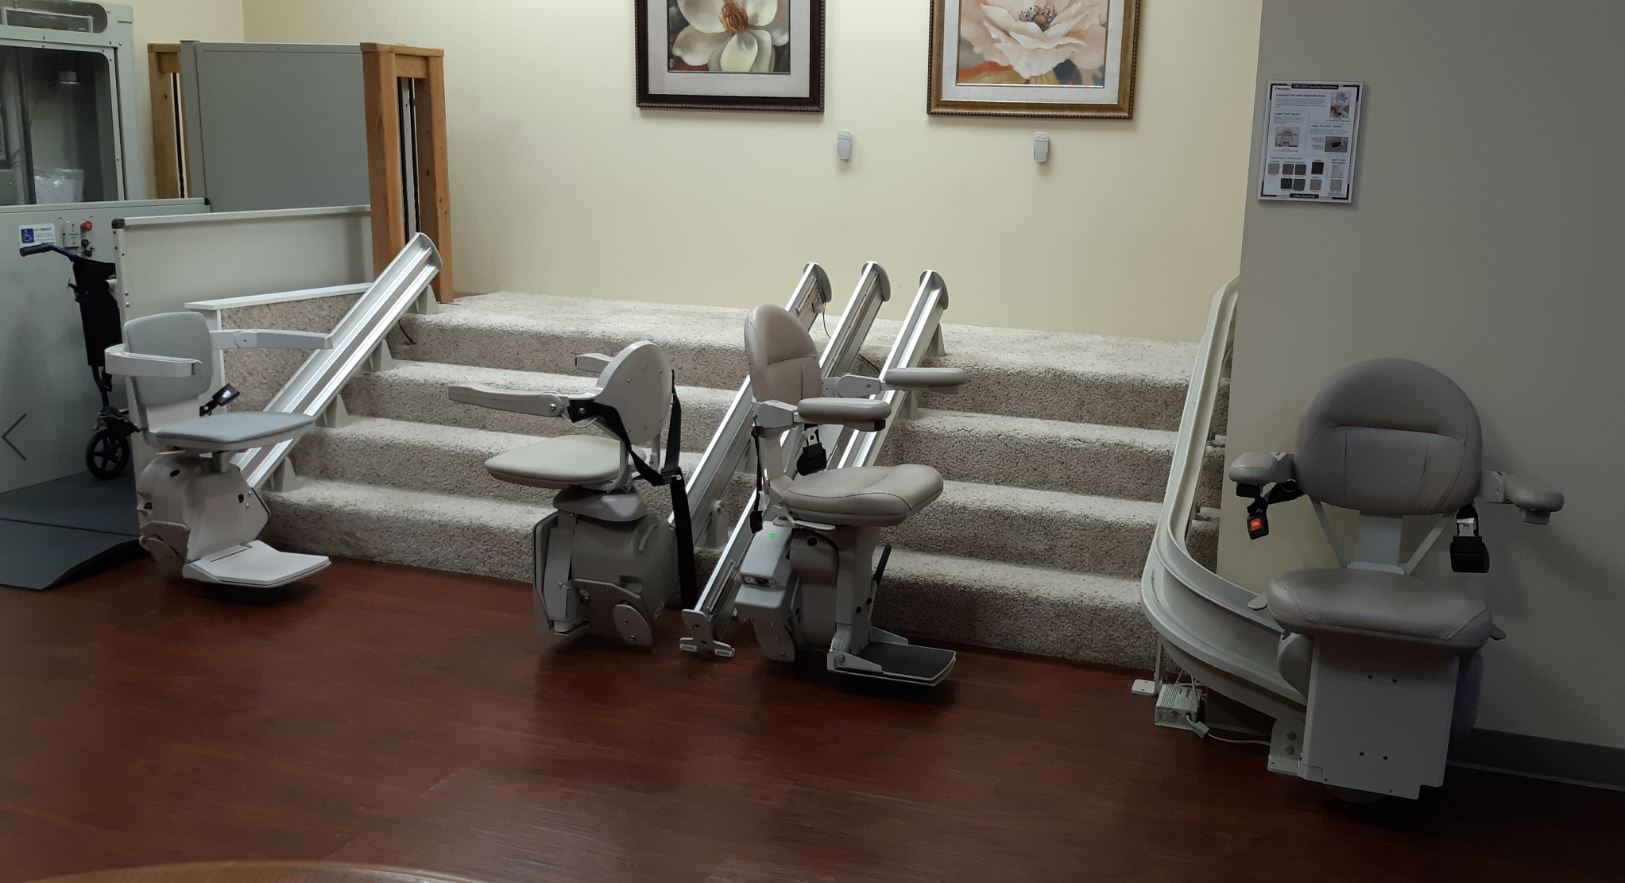 stair lifts in Lifeway Mobility showroom in Arlington Heights, Illinois